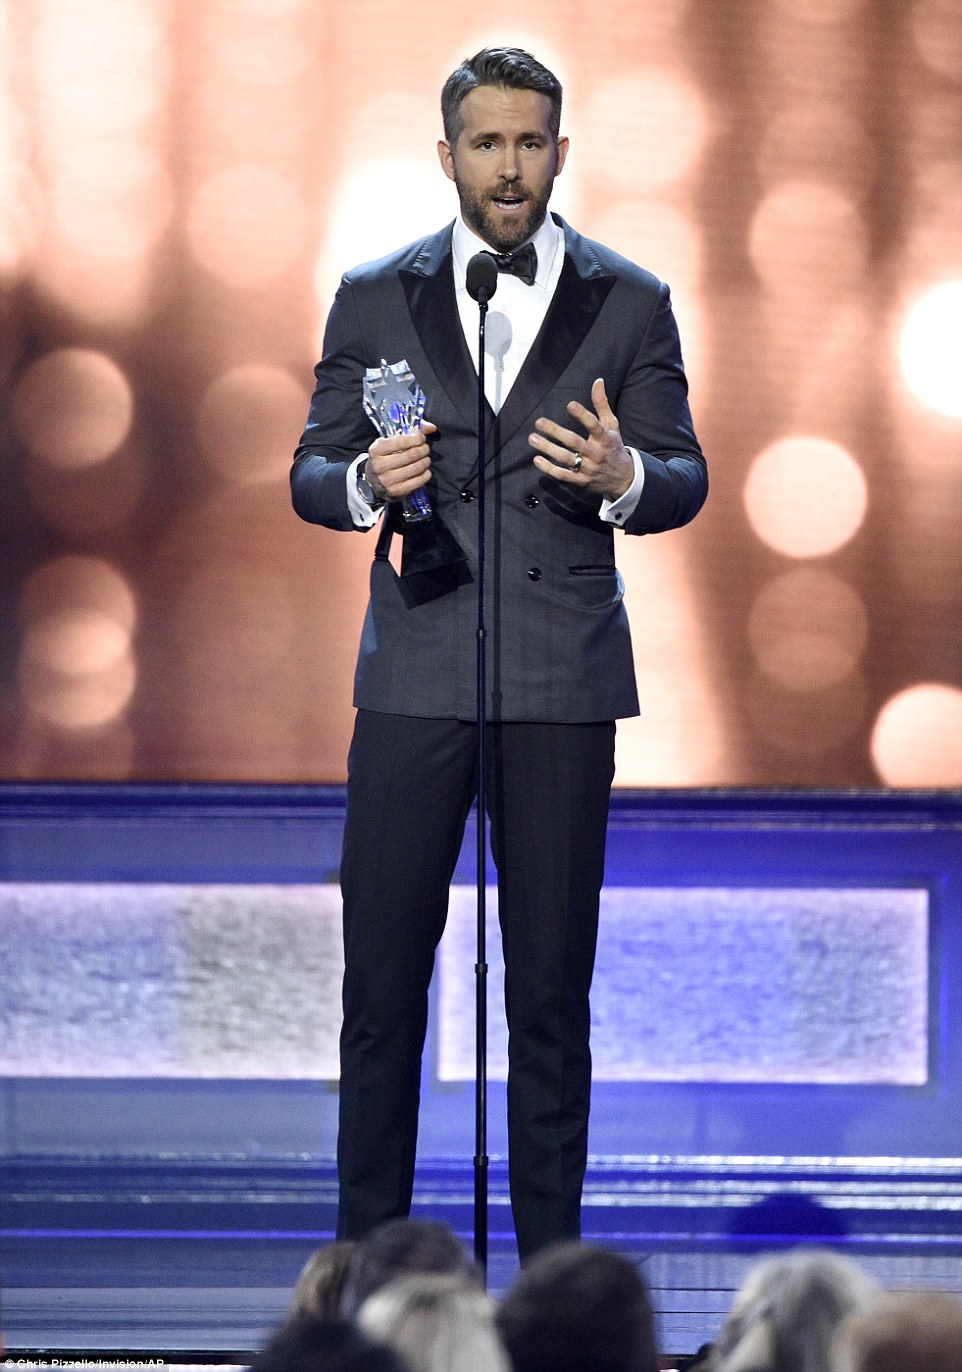 Handsome: Ryan Reynolds accepted the Entertainer of the Year award presented by Entertainment Weekly